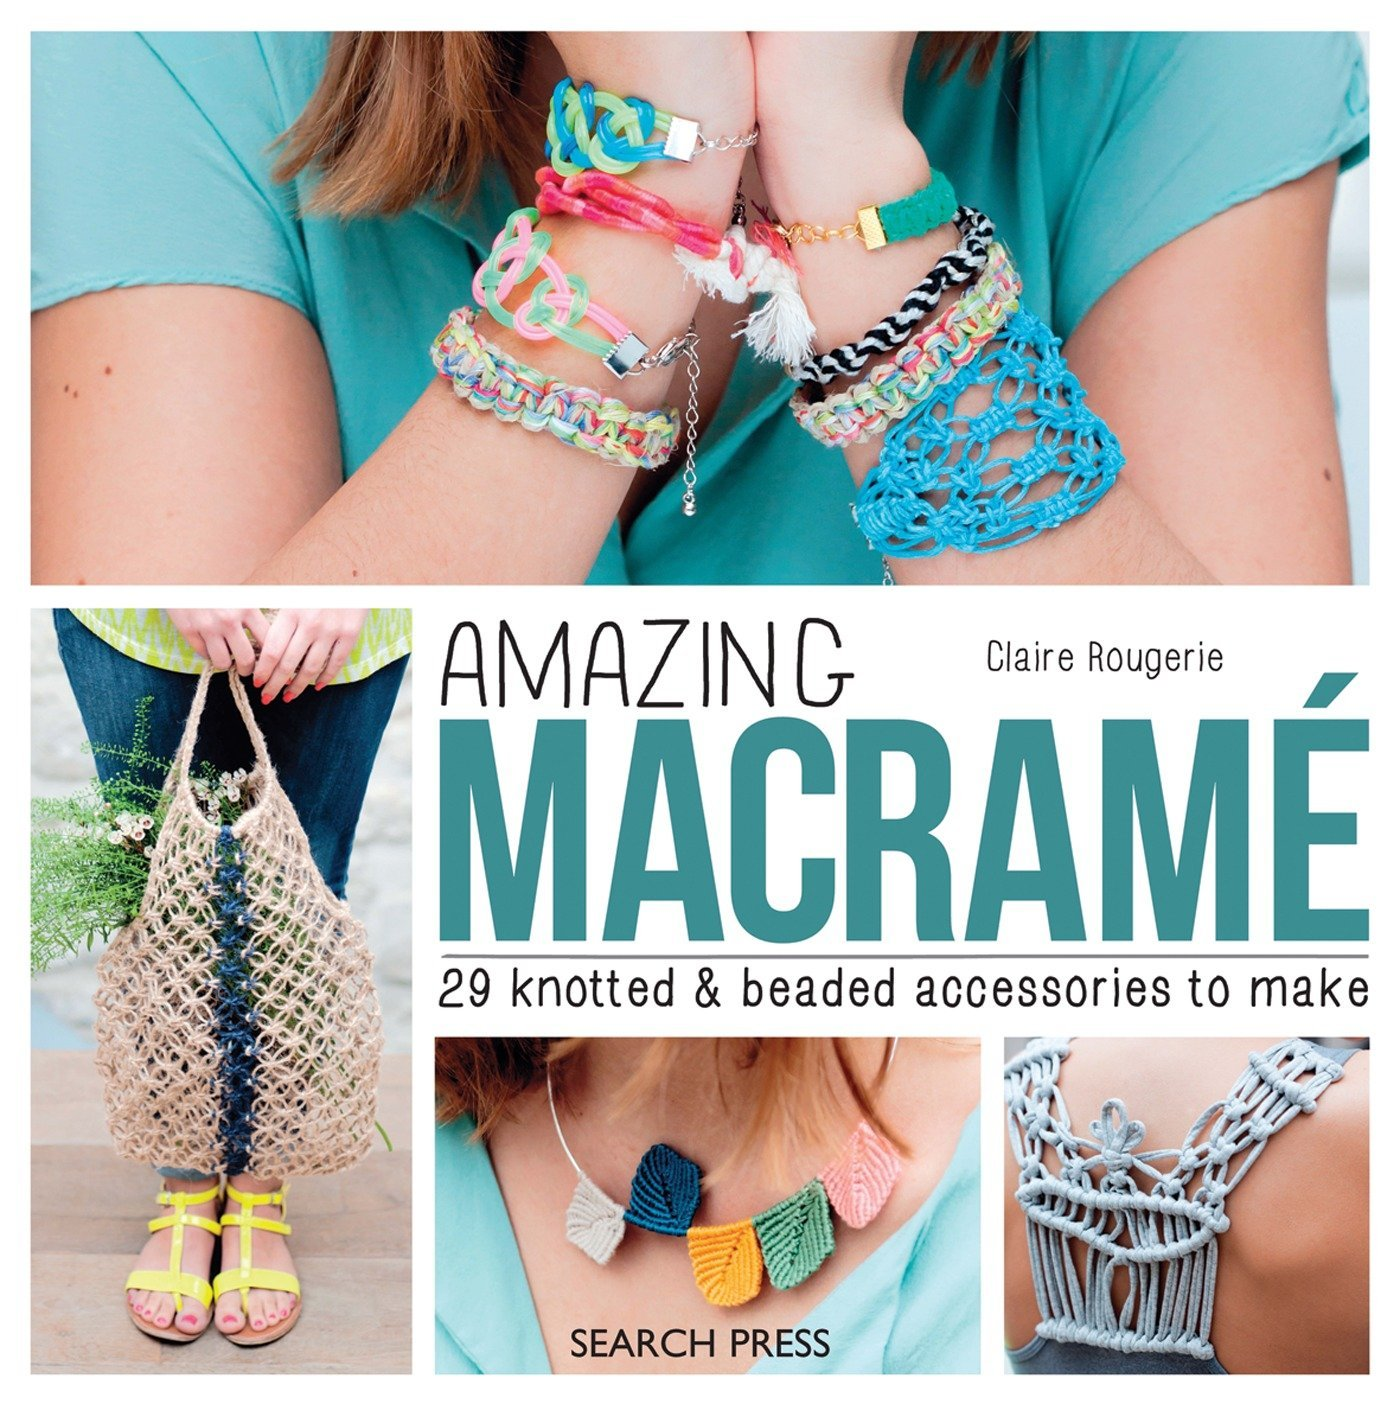 Amazing Macramé: 29 knotted & beaded accessories to make